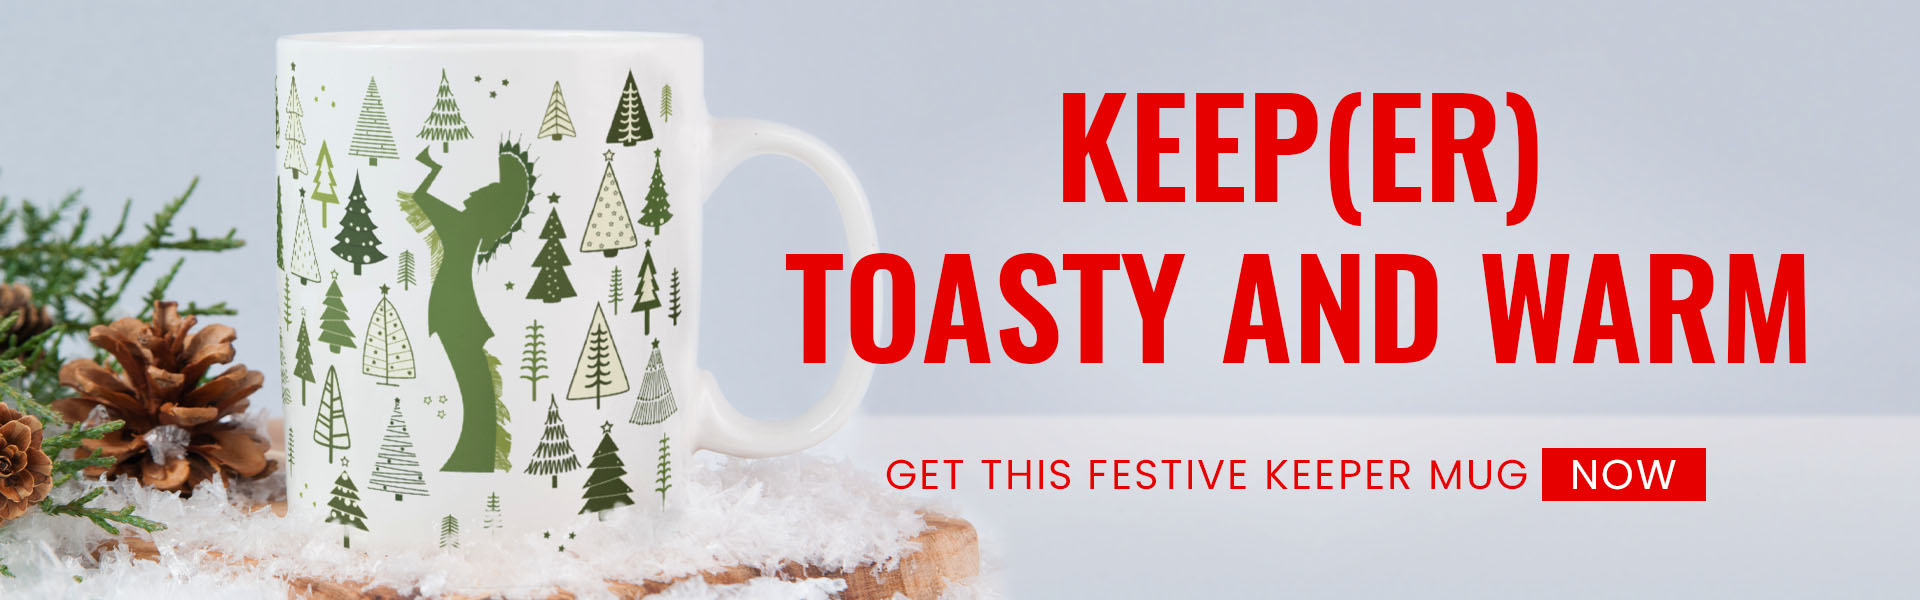 Keep(er) Toasty and Warm. Get this festive Keeper of the Plains Christmas mug now.